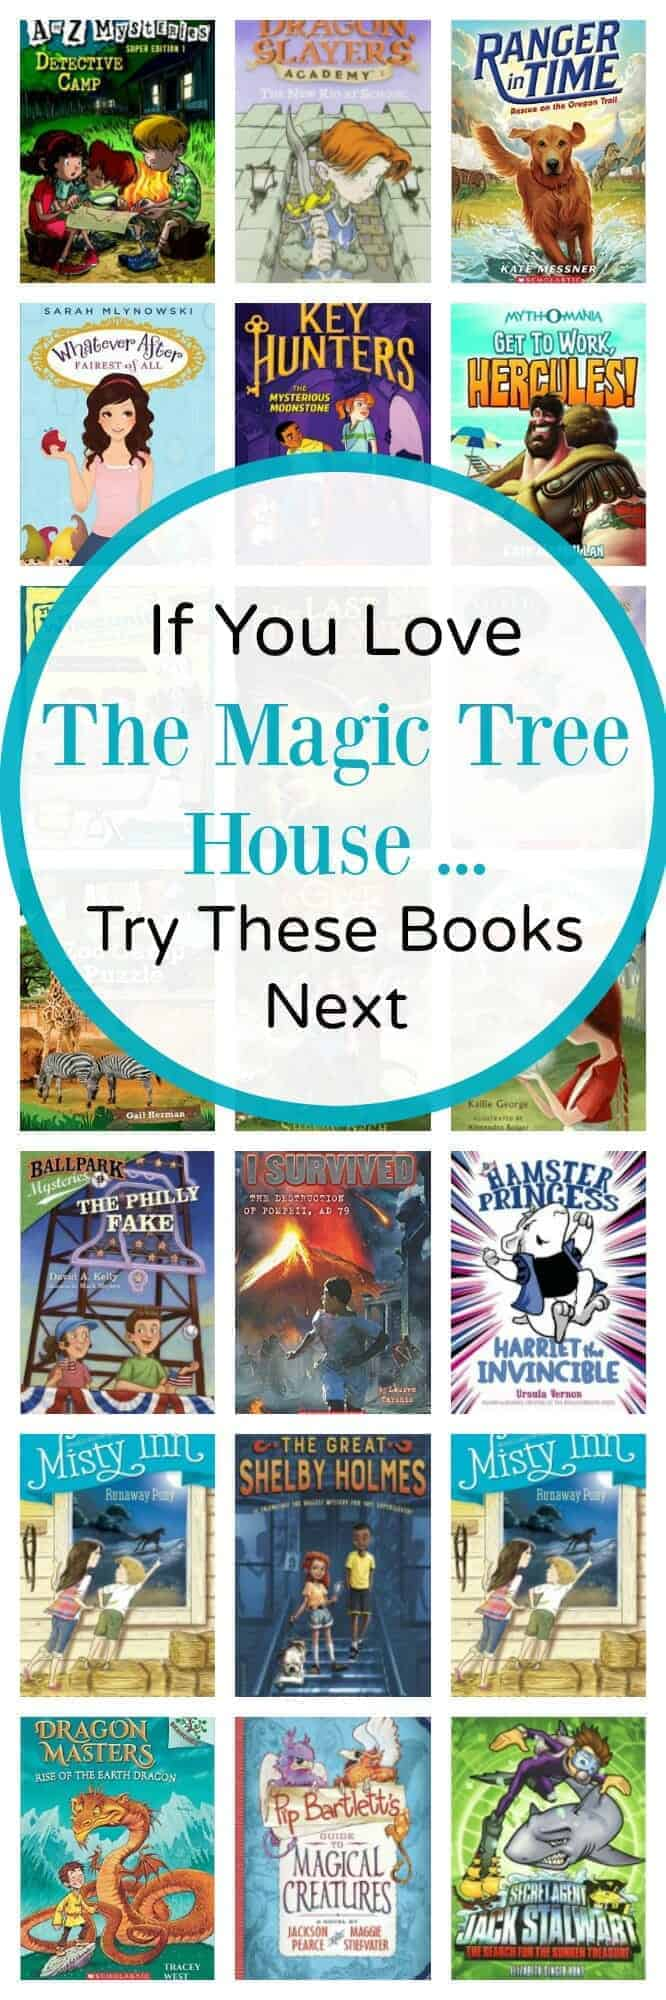 If you love The Magic Tree House book series, here's what to read next (read alikes)